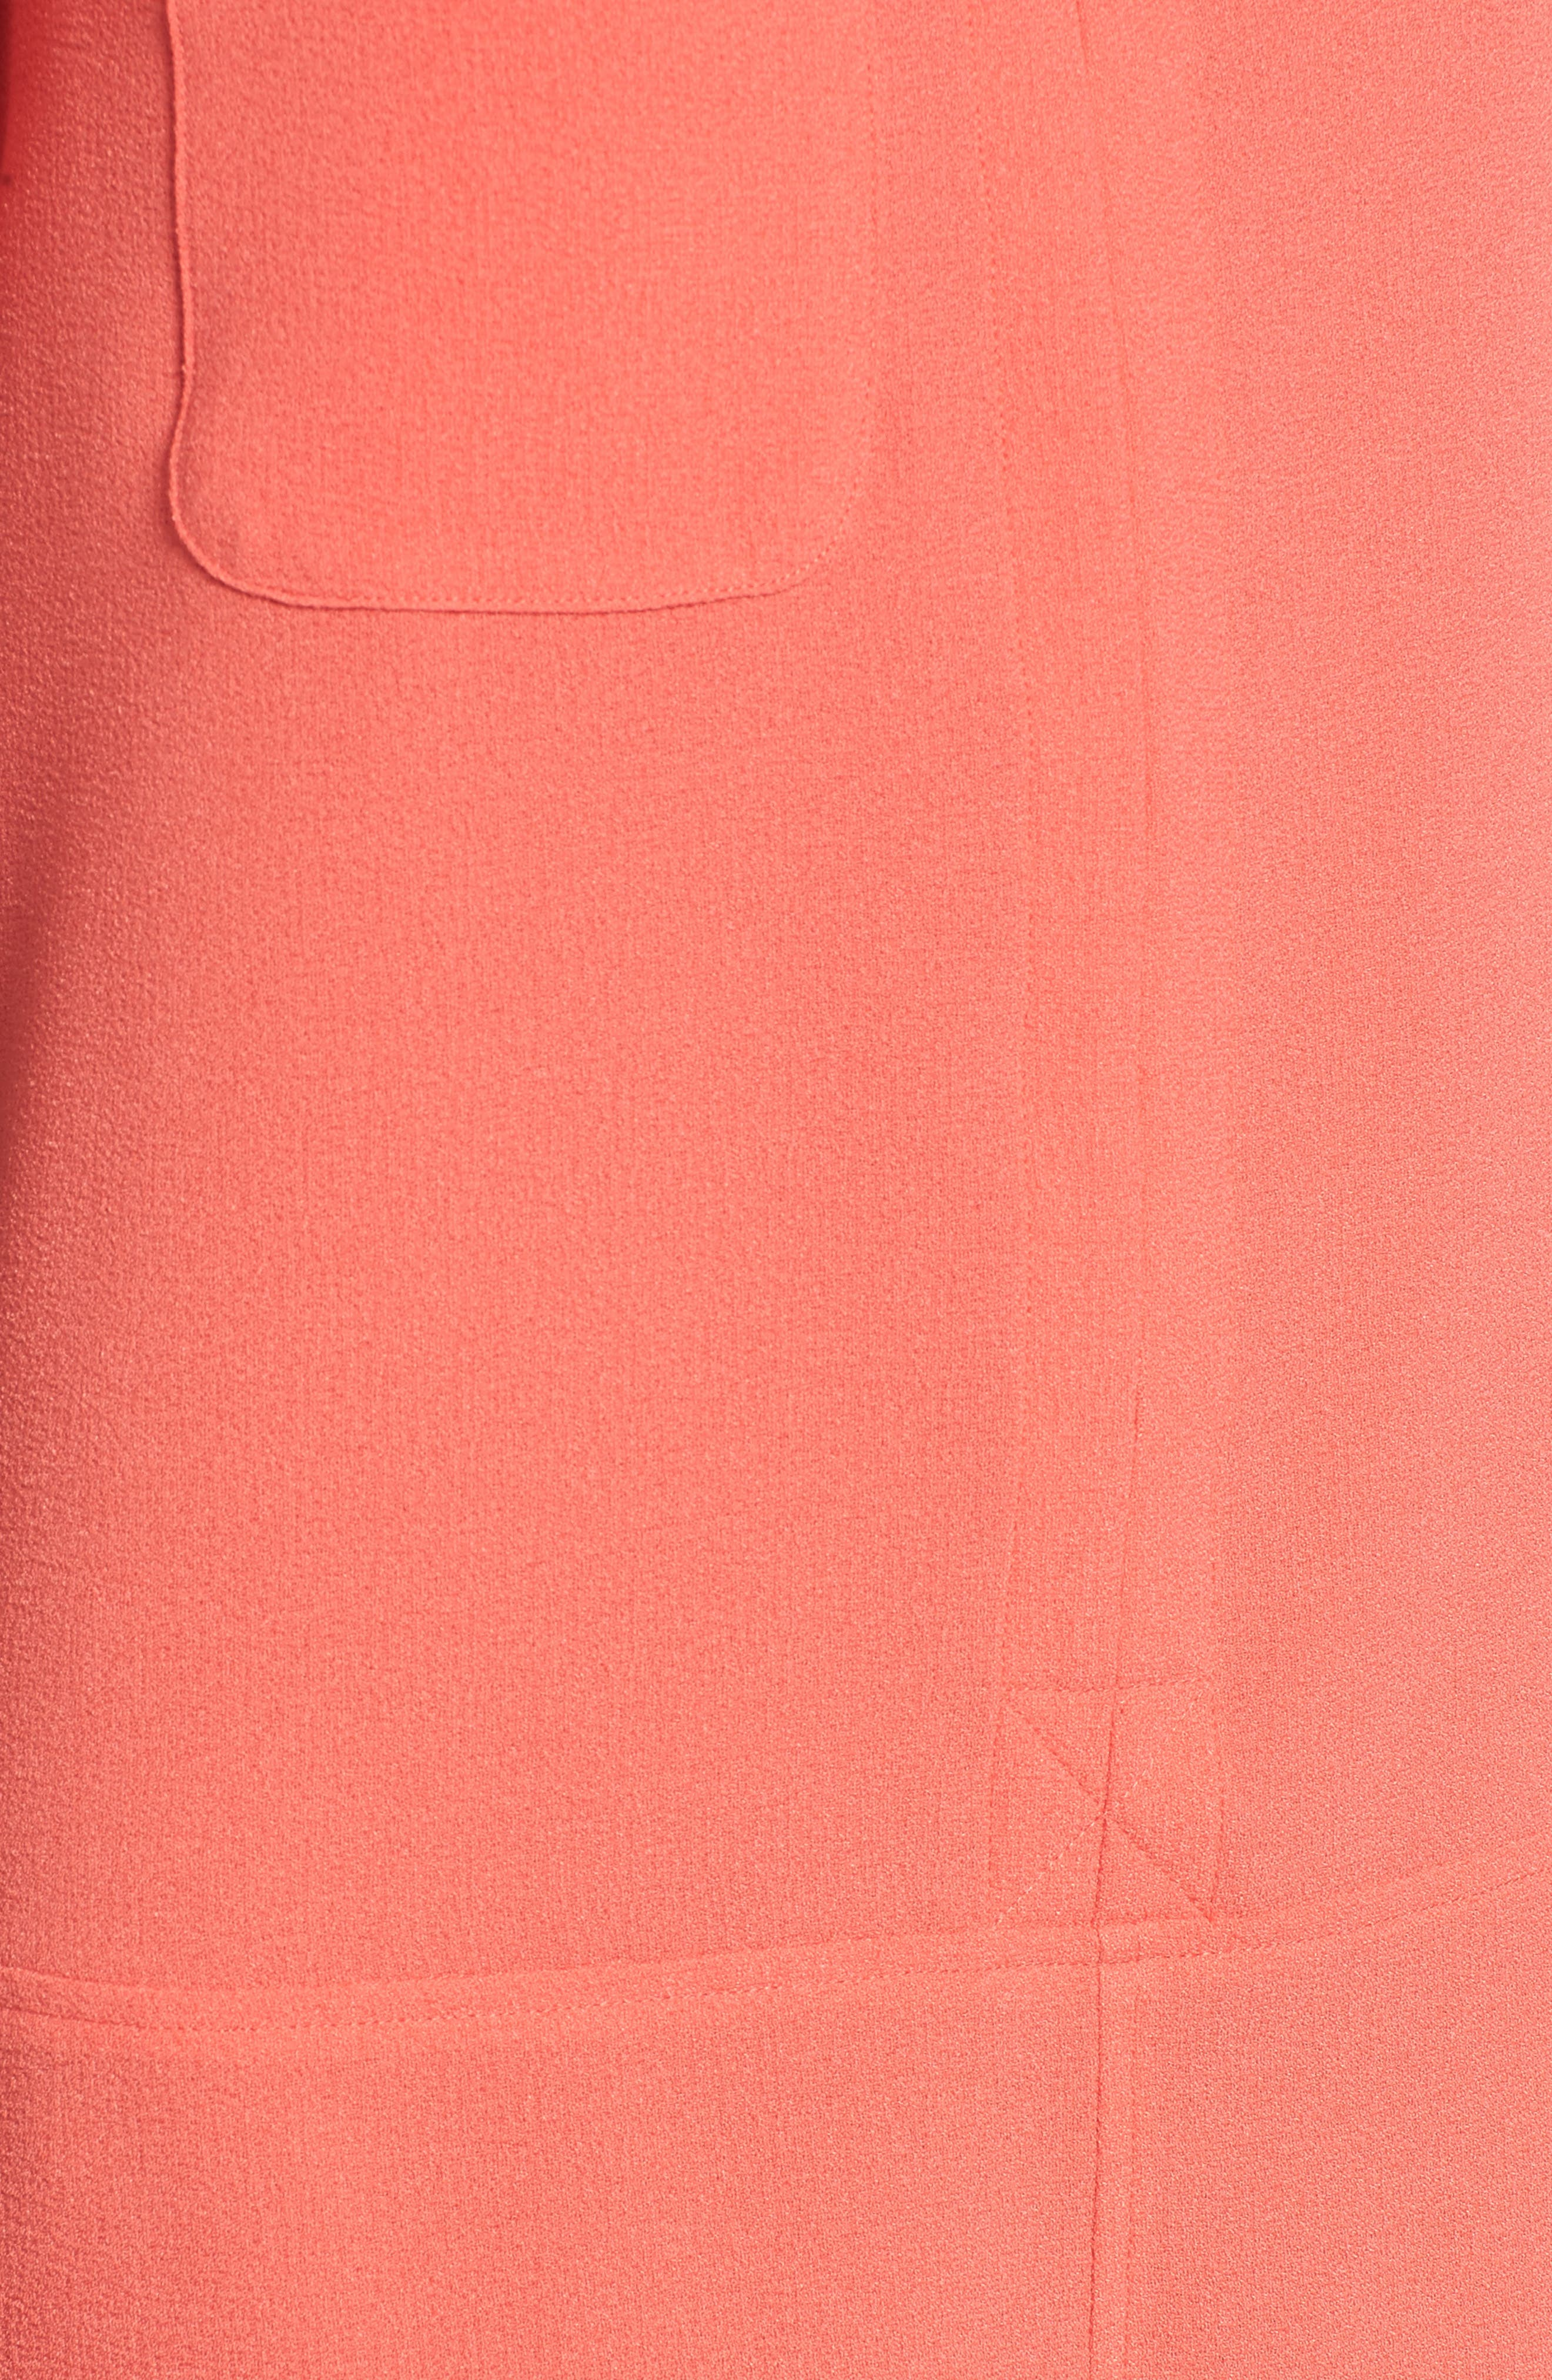 Hailey Crepe Dress,                             Alternate thumbnail 5, color,                             Hot Coral